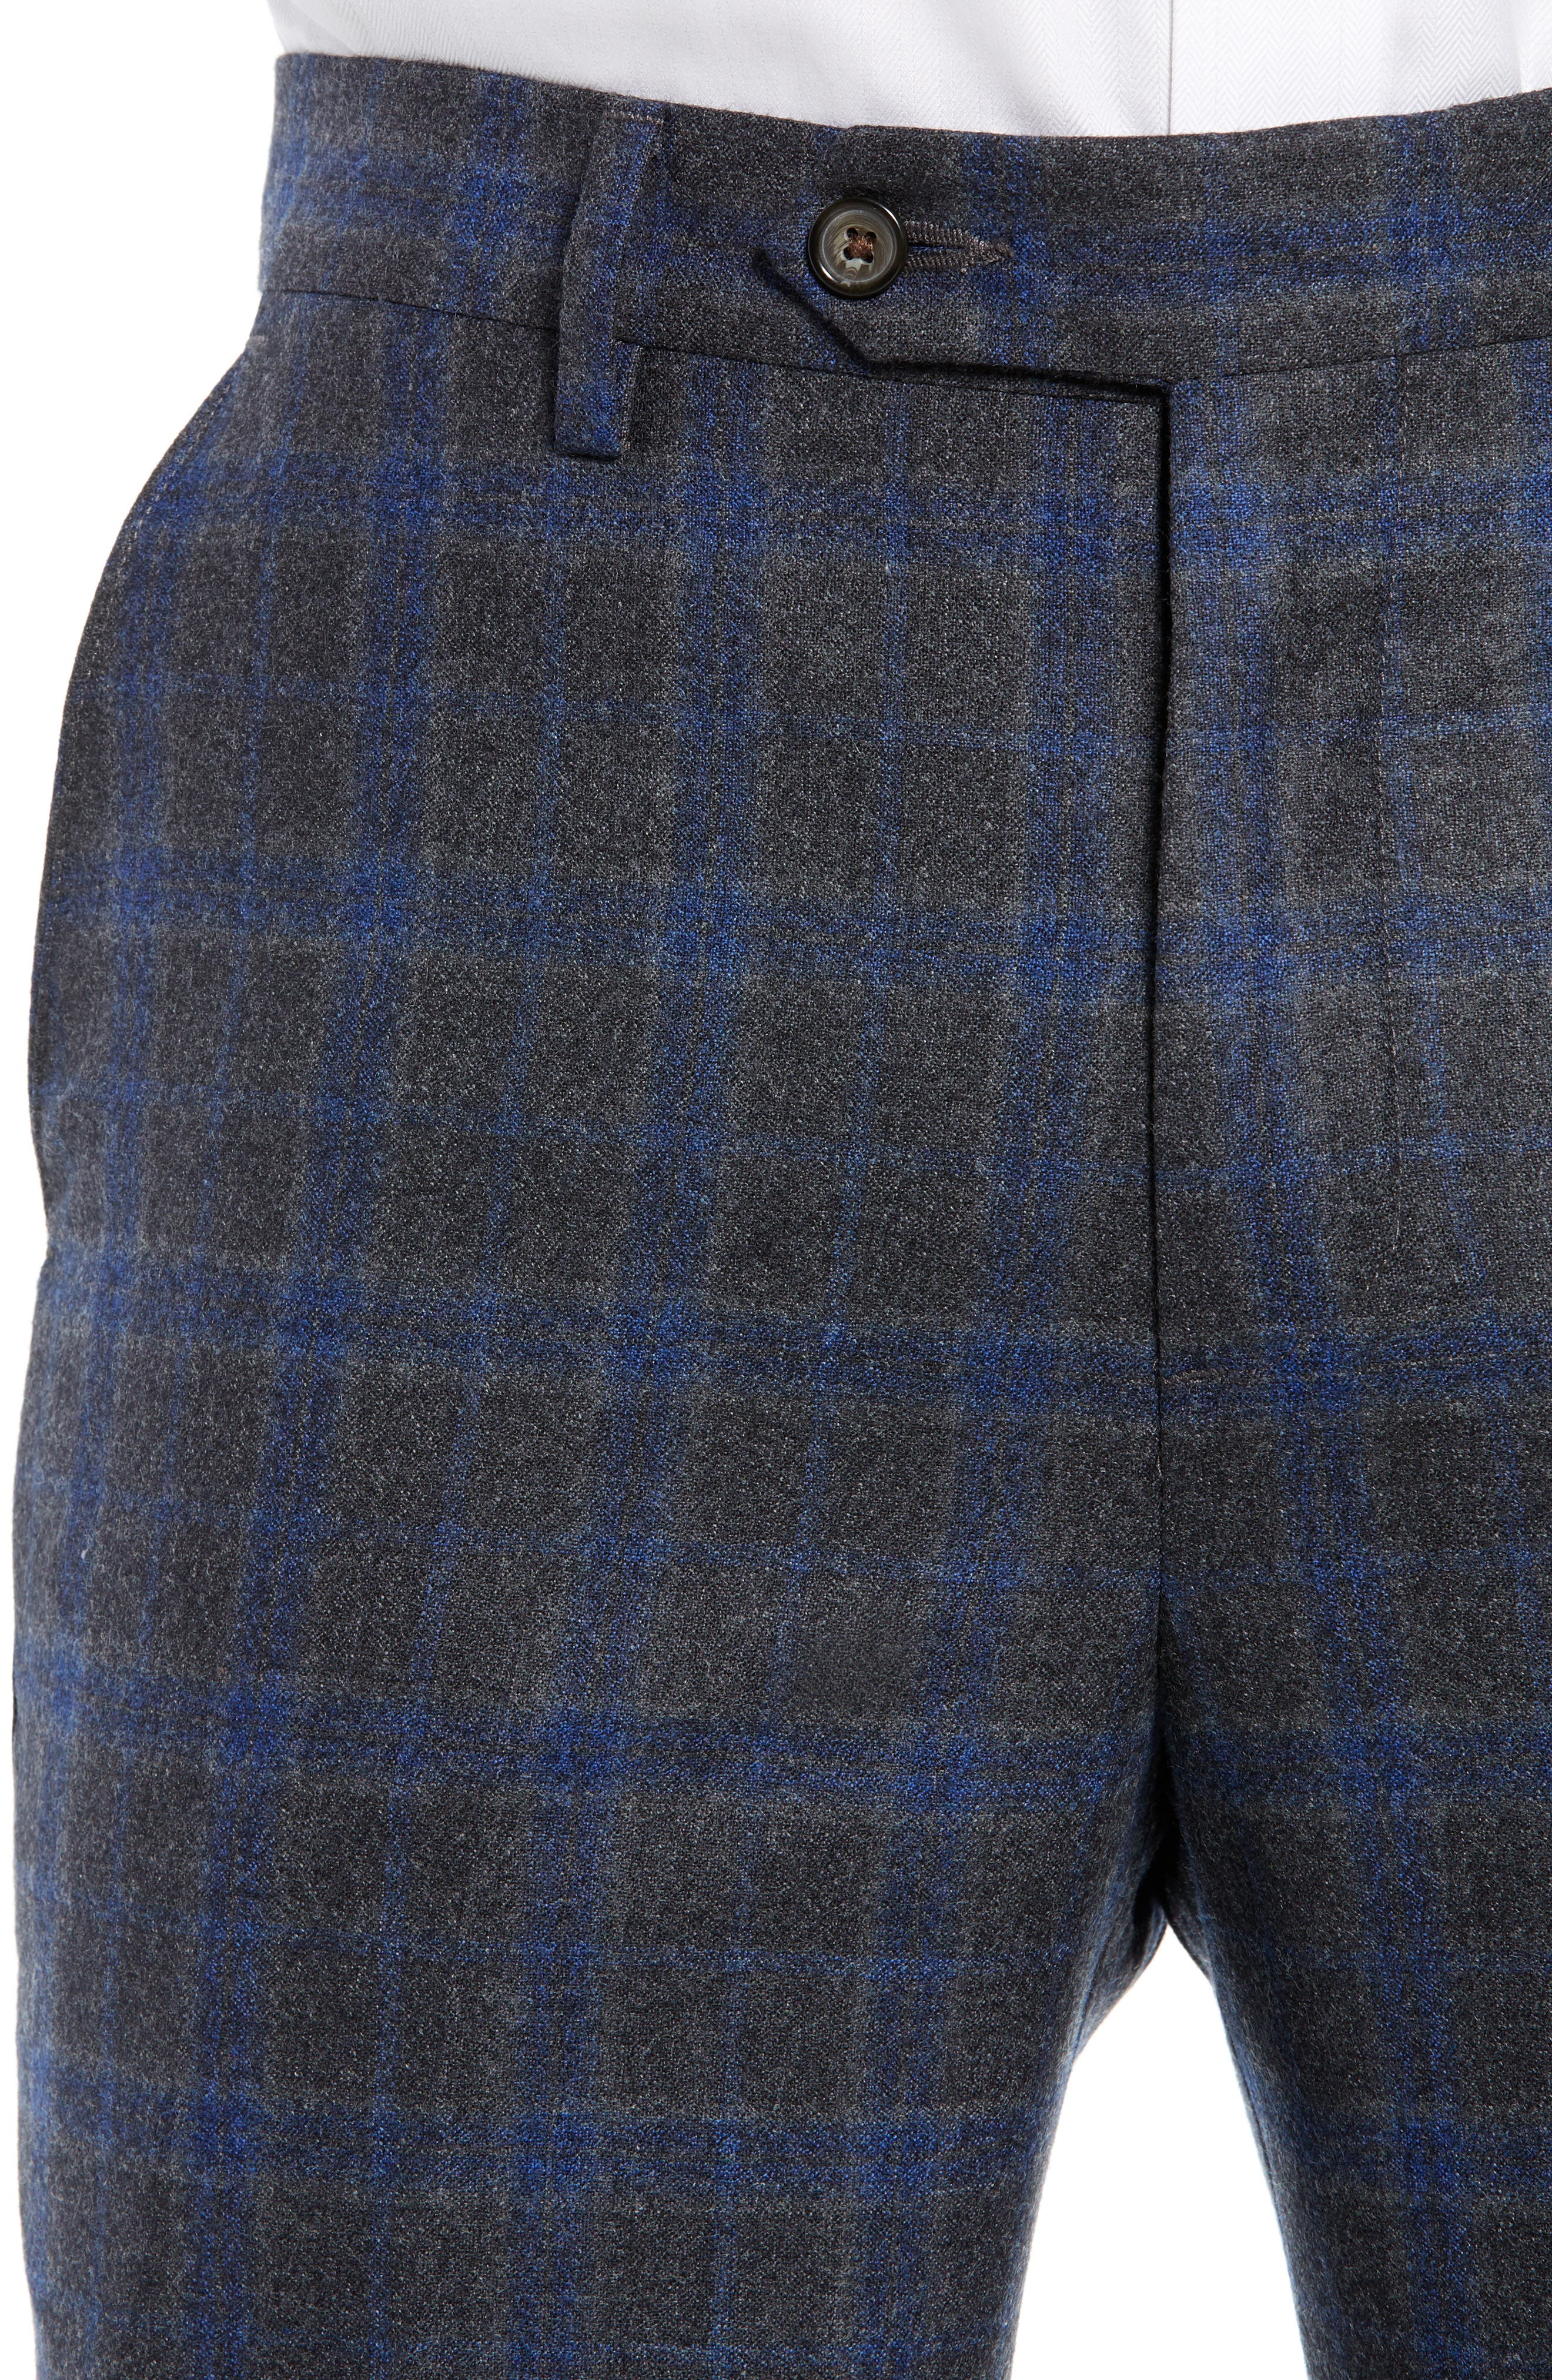 Manufacturing Flat Front Plaid Wool Trousers,                             Alternate thumbnail 4, color,                             021